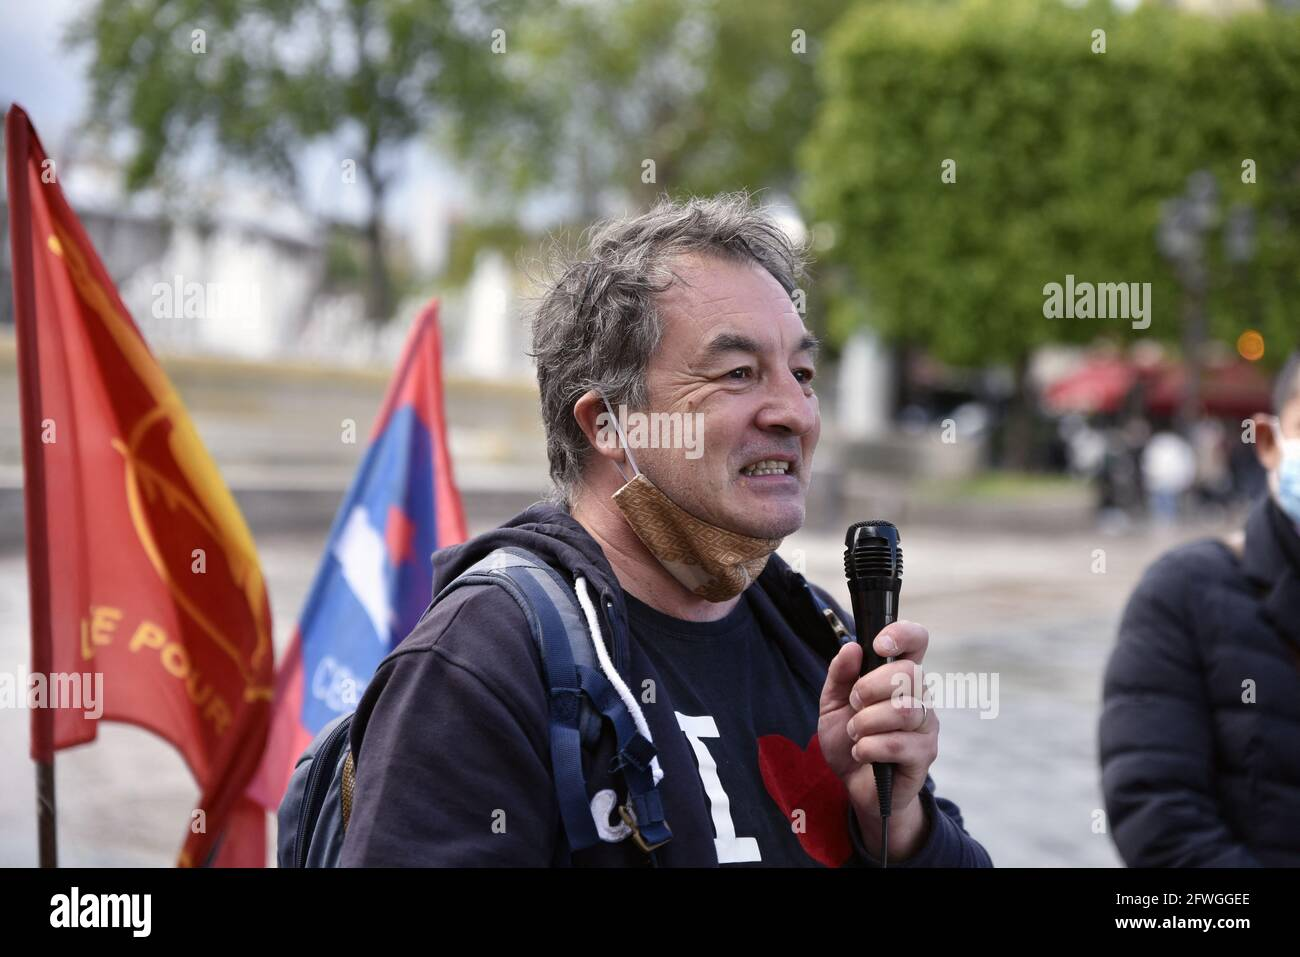 Co-founder of NGO Green Lotus, Jean-Marc Brulé during the rally for a democracy in Myanmar and against military coup, at the Hôtel de Ville in Paris, France, on May 22, 2021. Photo by Patrice Pierrot/Avenir Pictures/ABACAPRESS.COM Stock Photo